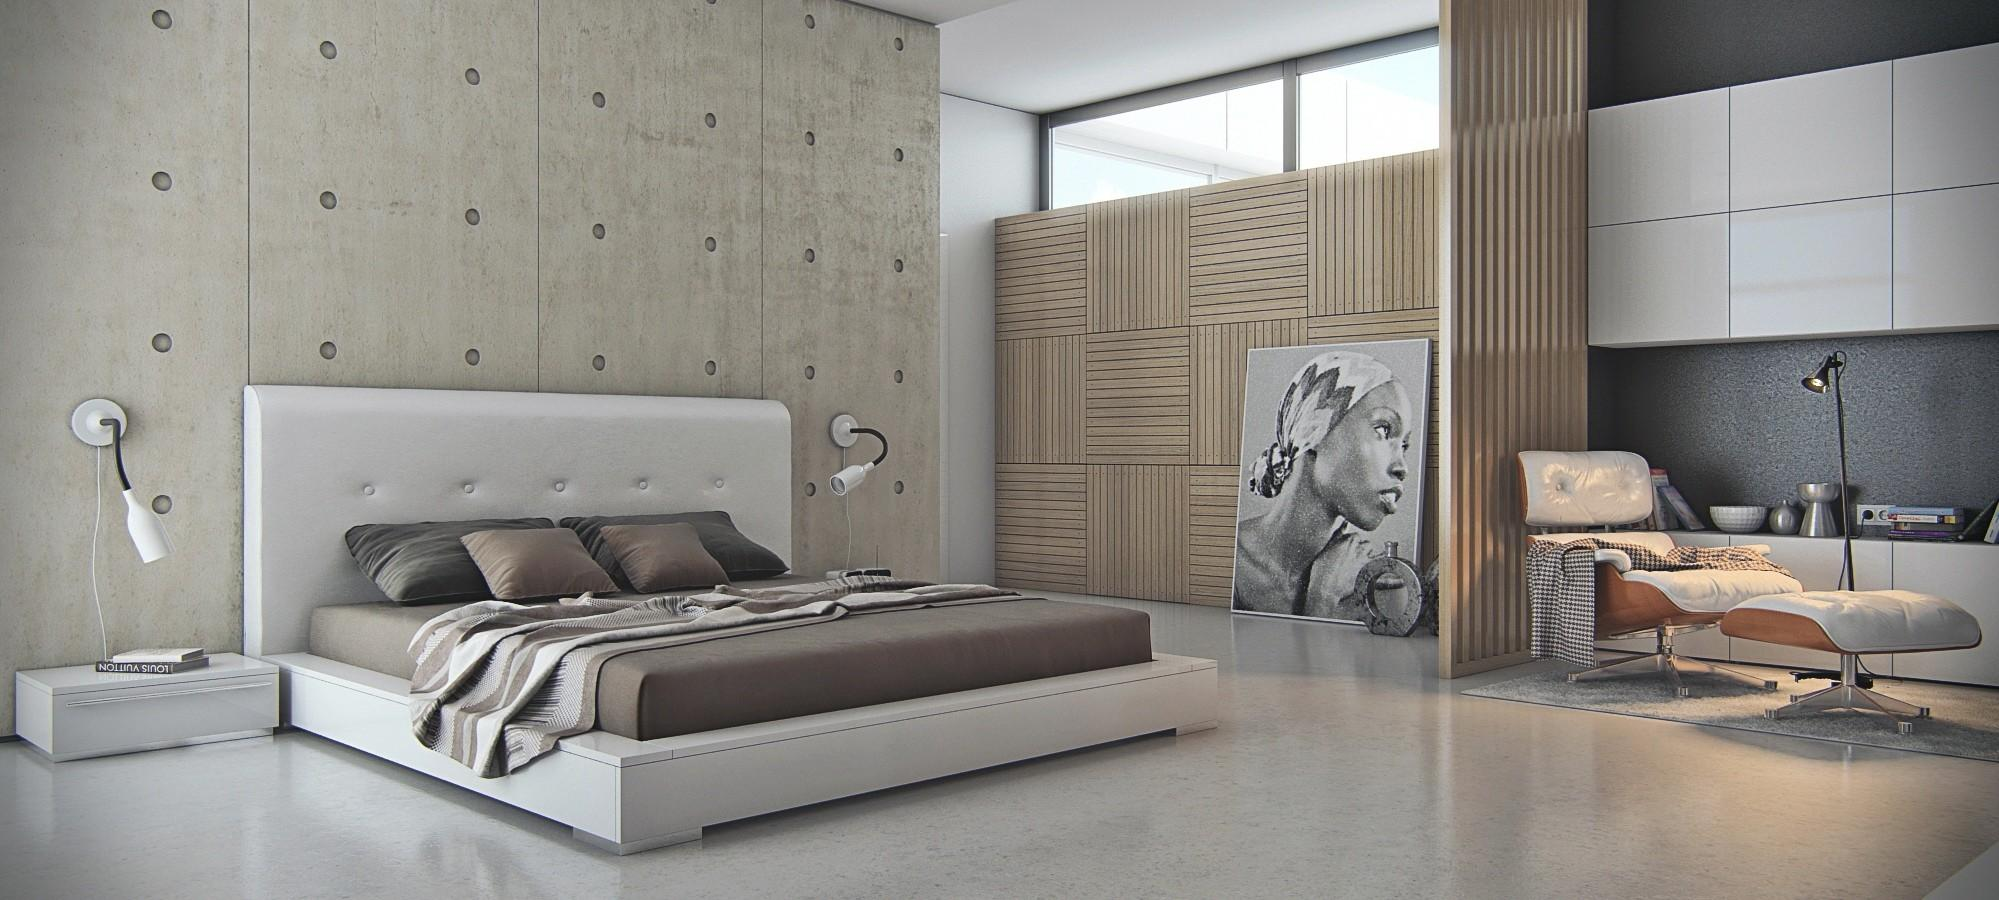 Concrete Bedroom Featre Wall Interior Design Ideas